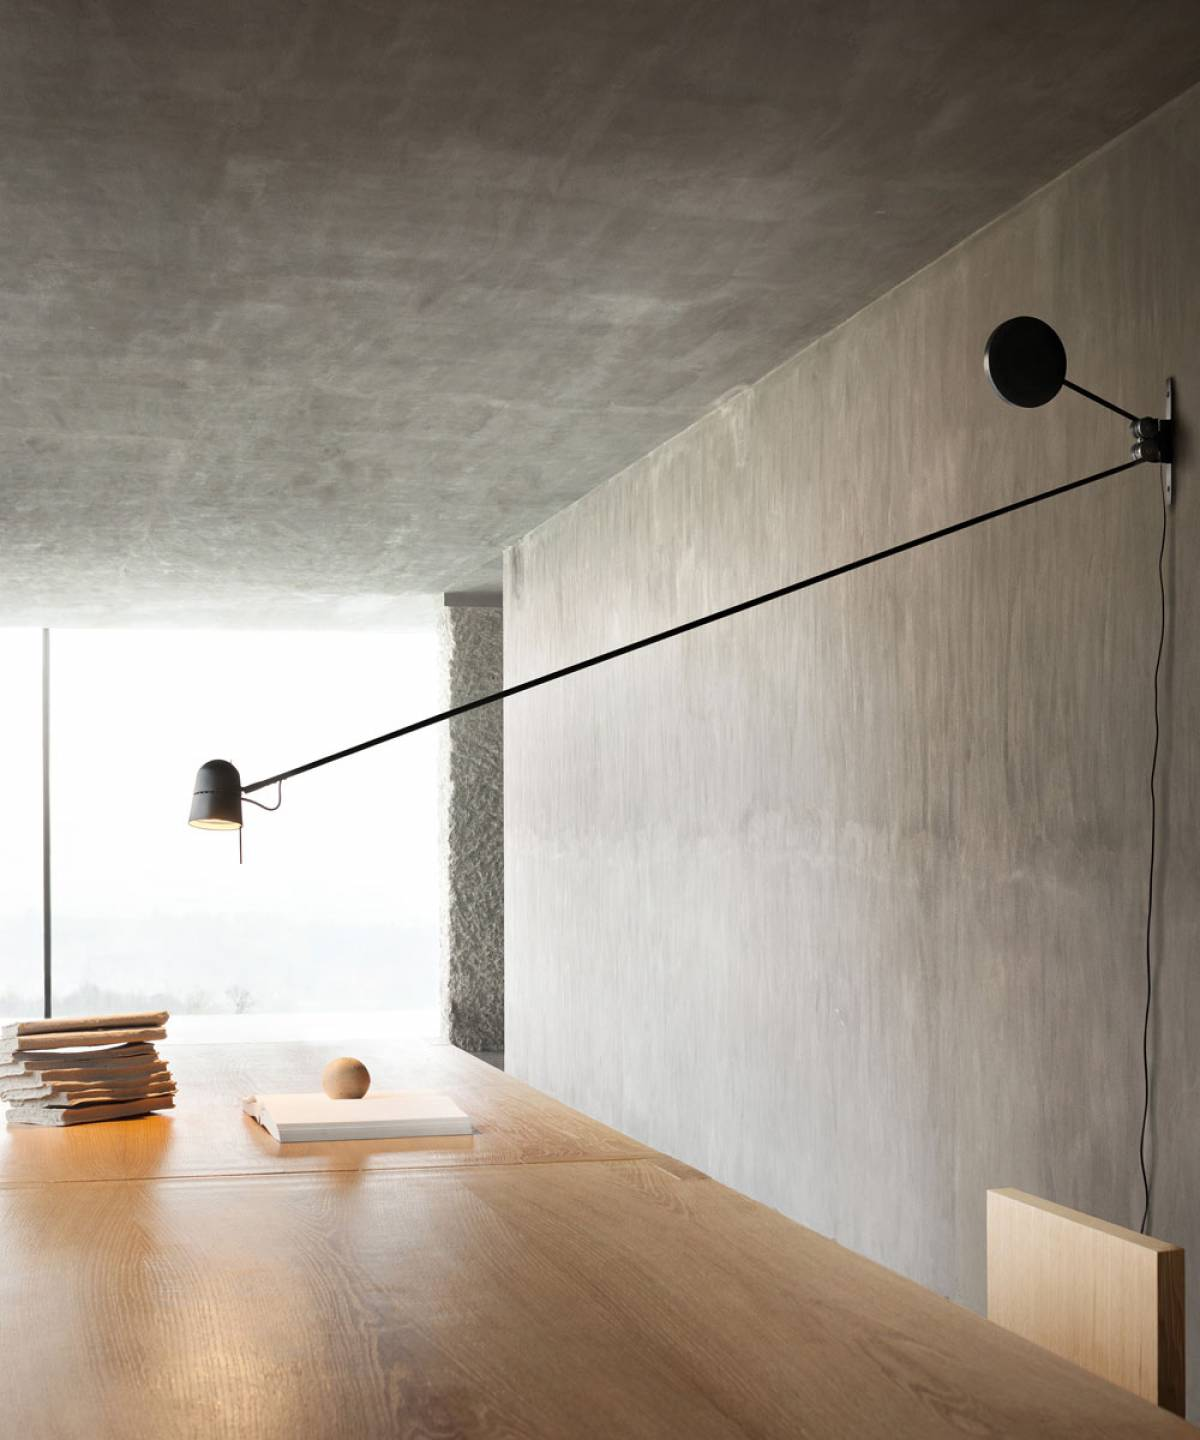 Counterbalance wall lamp Luceplan